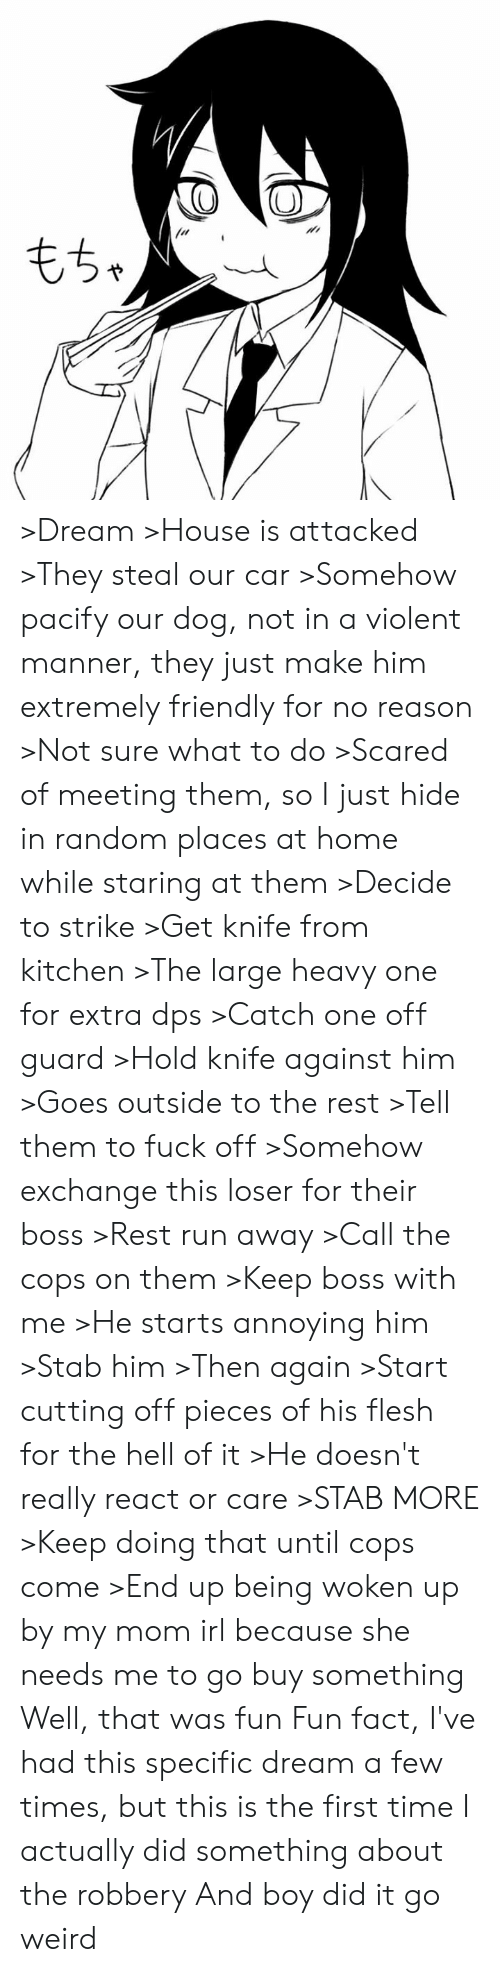 Dank, Run, and Weird: >Dream >House is attacked >They steal our car >Somehow pacify our dog, not in a violent manner, they just make him extremely friendly for no reason >Not sure what to do >Scared of meeting them, so I just hide in random places at home while staring at them >Decide to strike >Get knife from kitchen >The large heavy one for extra dps >Catch one off guard >Hold knife against him >Goes outside to the rest >Tell them to fuck off >Somehow exchange this loser for their boss >Rest run away >Call the cops on them >Keep boss with me >He starts annoying him >Stab him >Then again >Start cutting off pieces of his flesh for the hell of it >He doesn't really react or care >STAB MORE >Keep doing that until cops come >End up being woken up by my mom irl because she needs me to go buy something  Well, that was fun  Fun fact, I've had this specific dream a few times, but this is the first time I actually did something about the robbery  And boy did it go weird